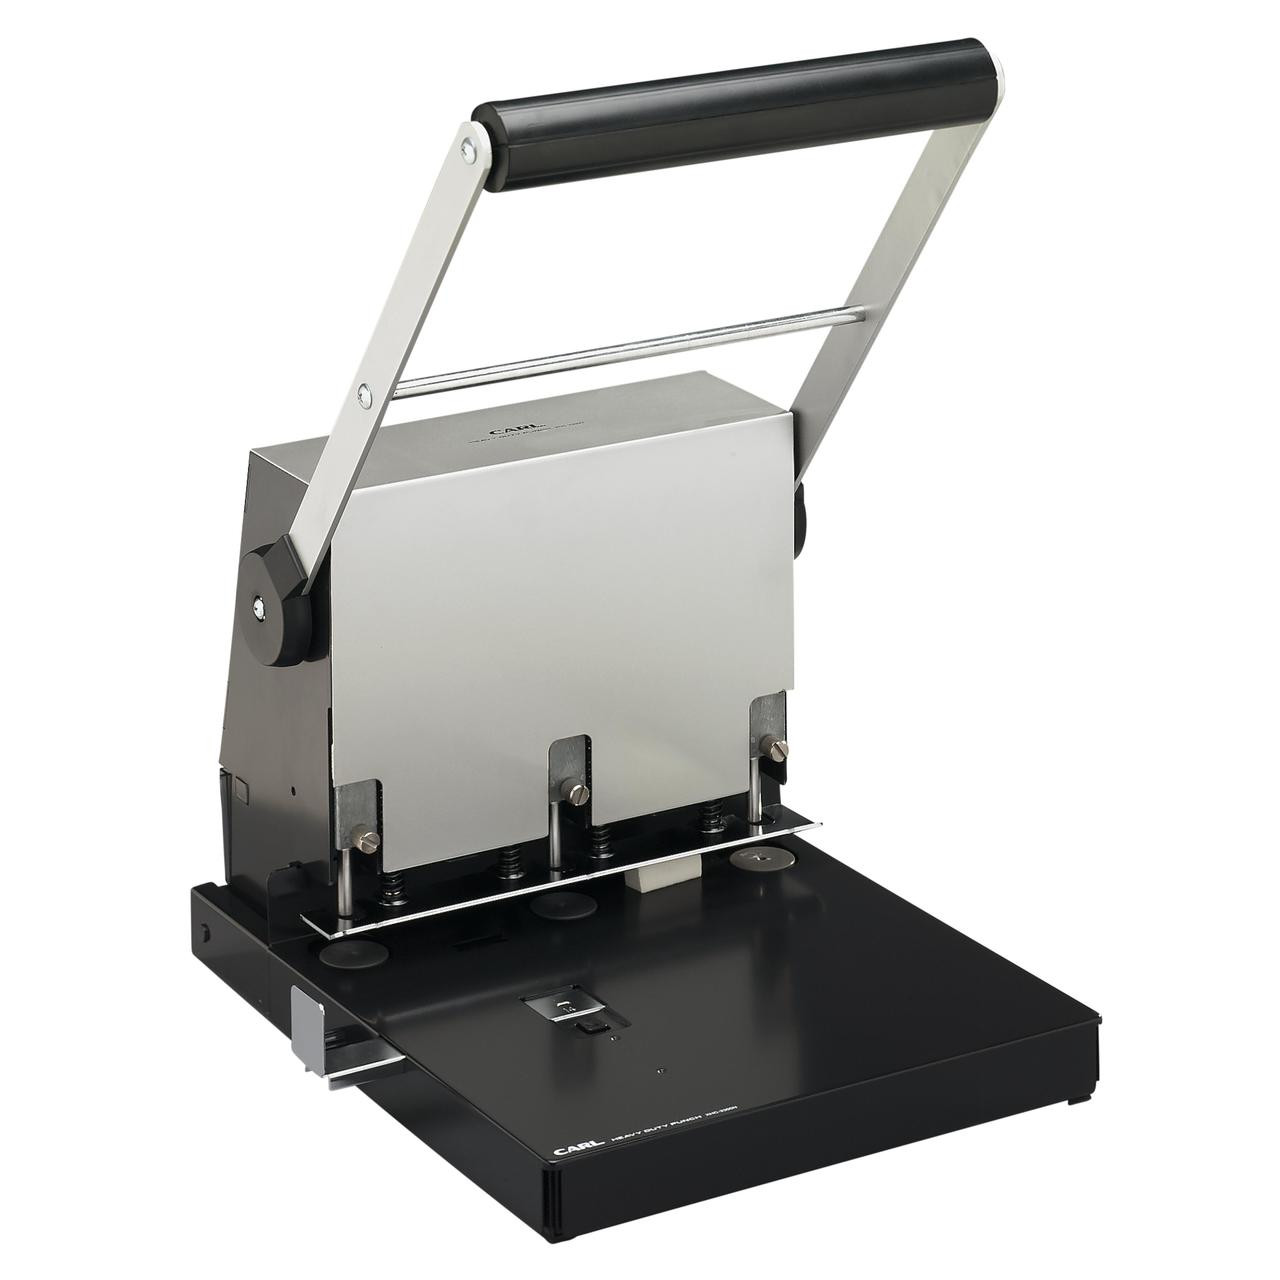 Letter Hole Puncher.Carl 300 Page Adjustable 3 Hole Punch For Letter And Legal Sized Paper